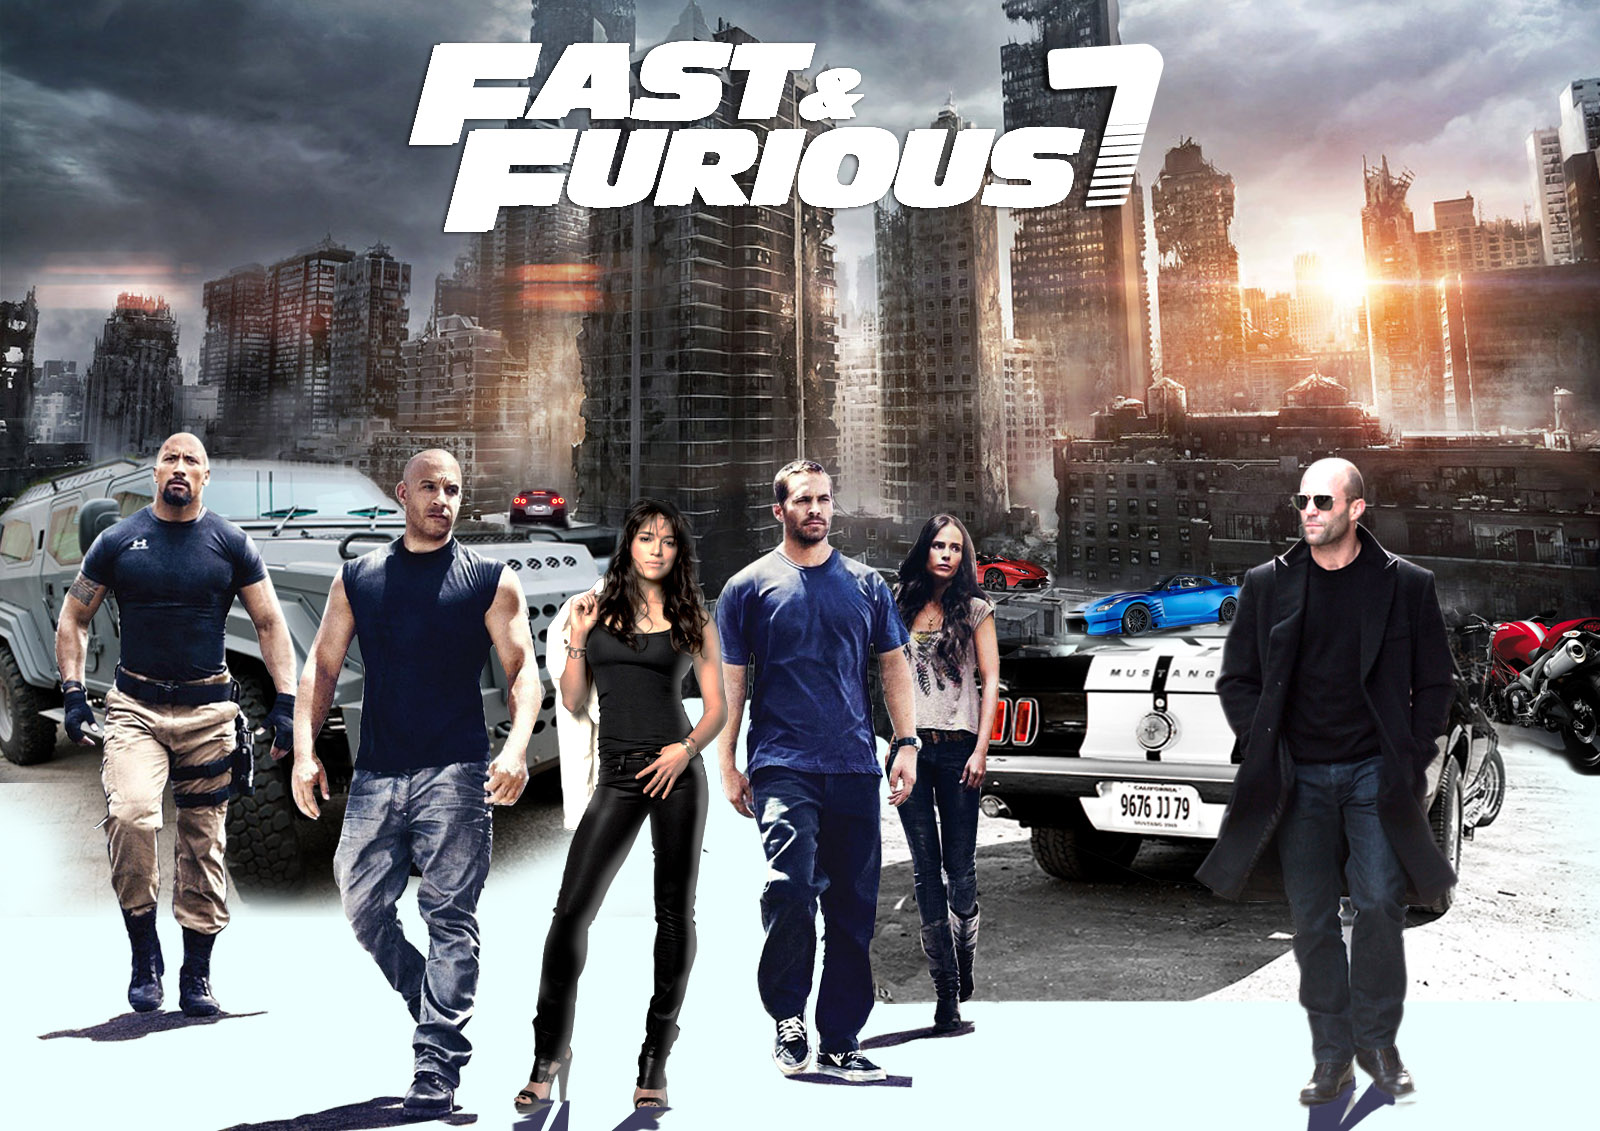 Fast and furious 7 full movie with english subtitles watch online